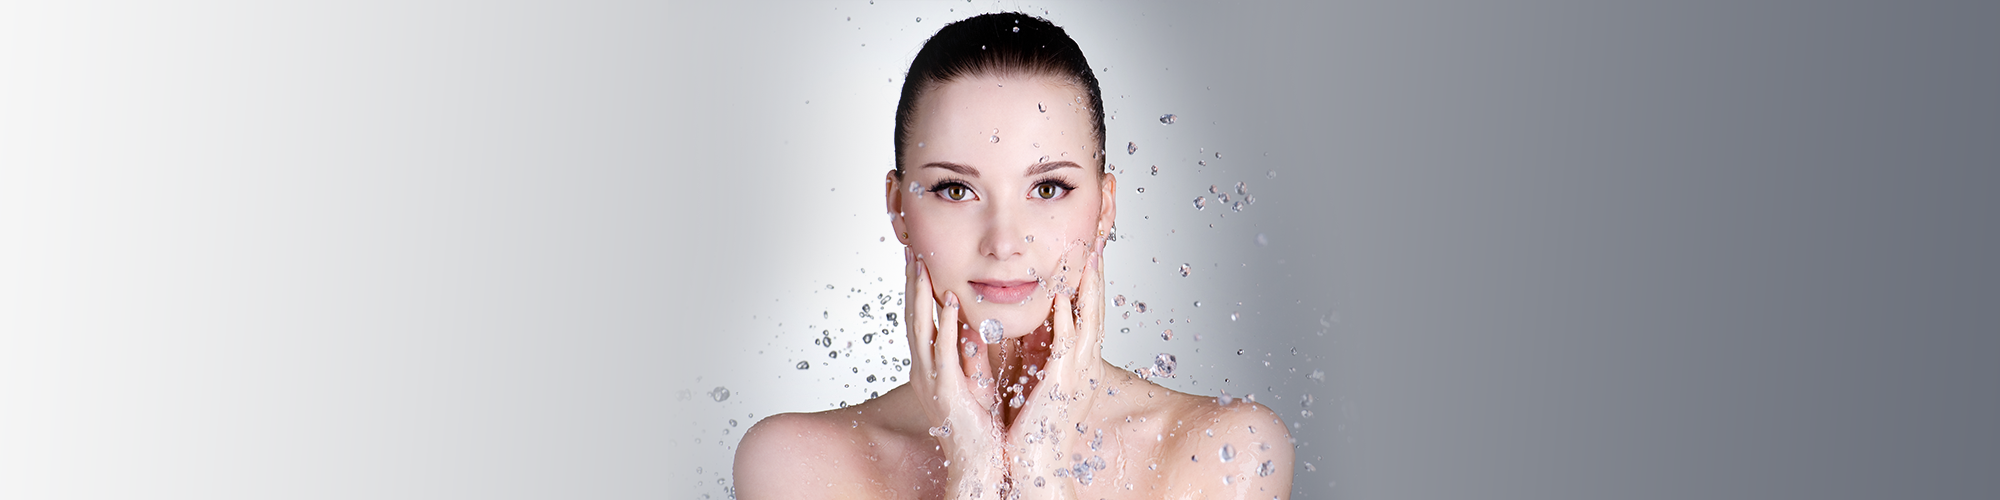 Hydrafacials, Chemical Peels for acne, Facials clean your pores